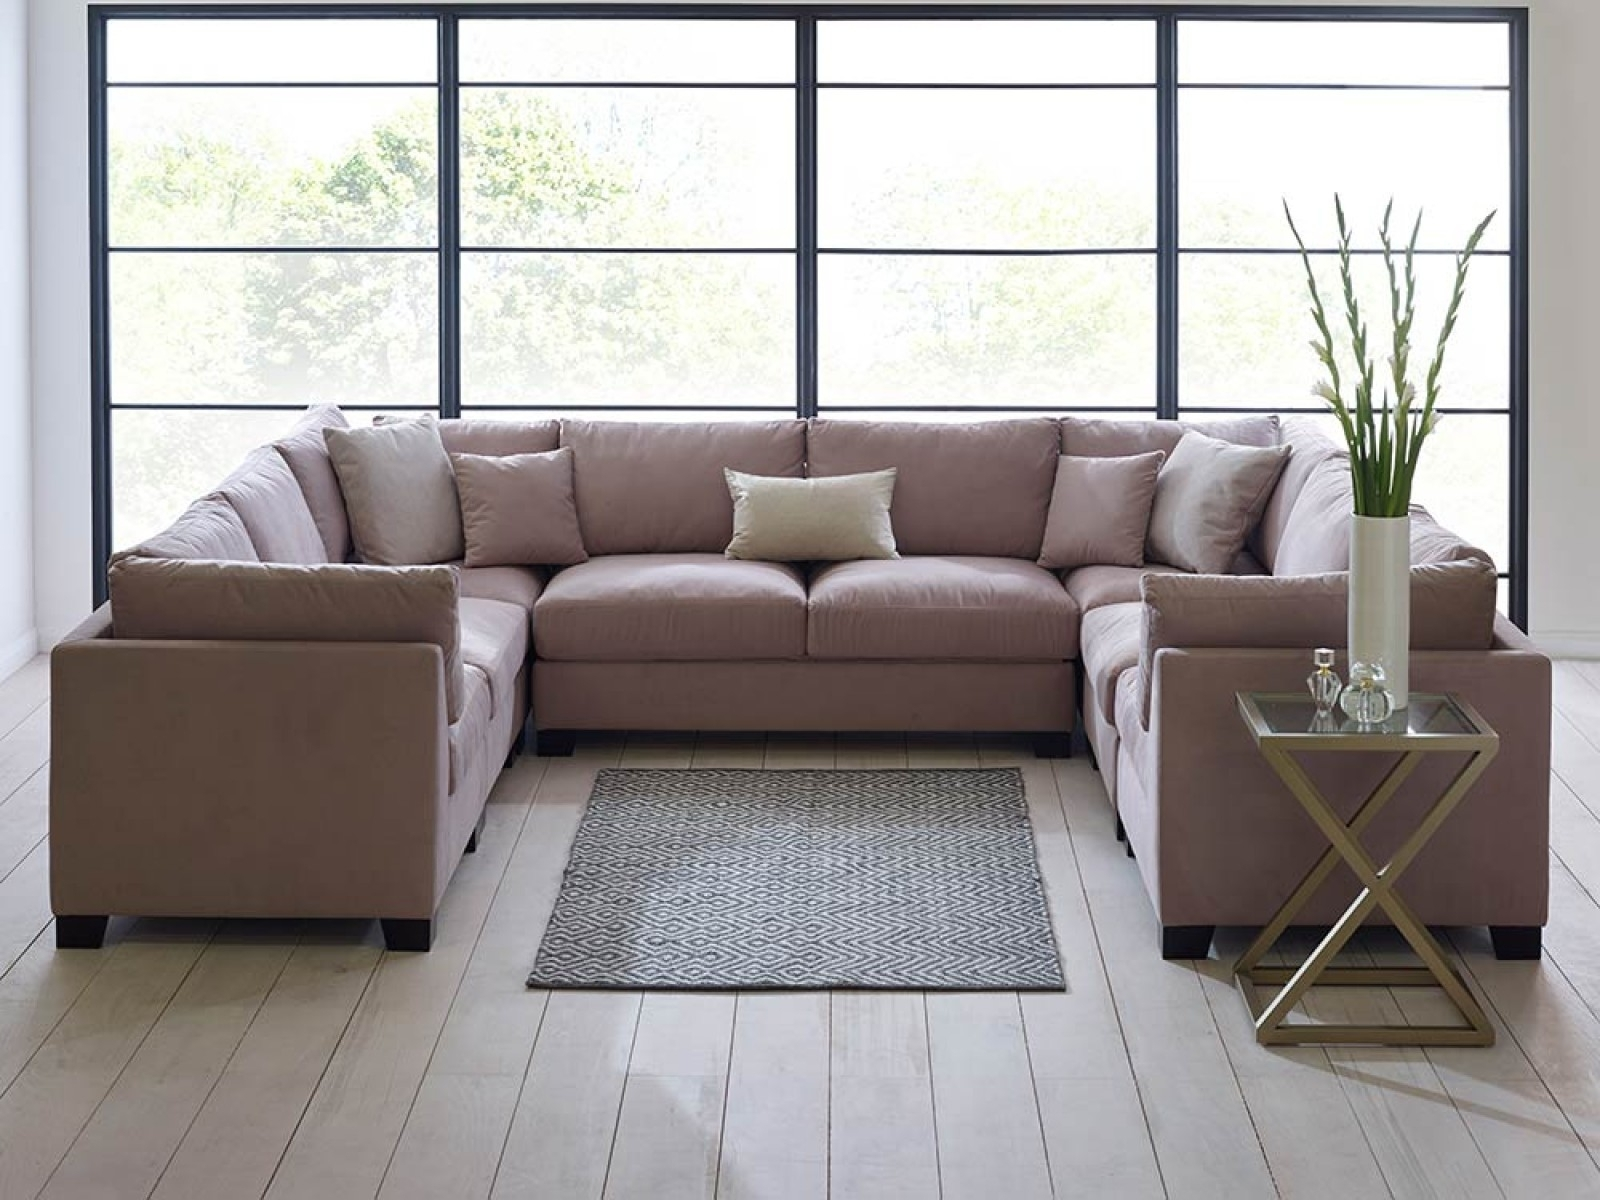 Sofa Set Pertaining To Modern U Shaped Sectional Sofas (View 12 of 20)